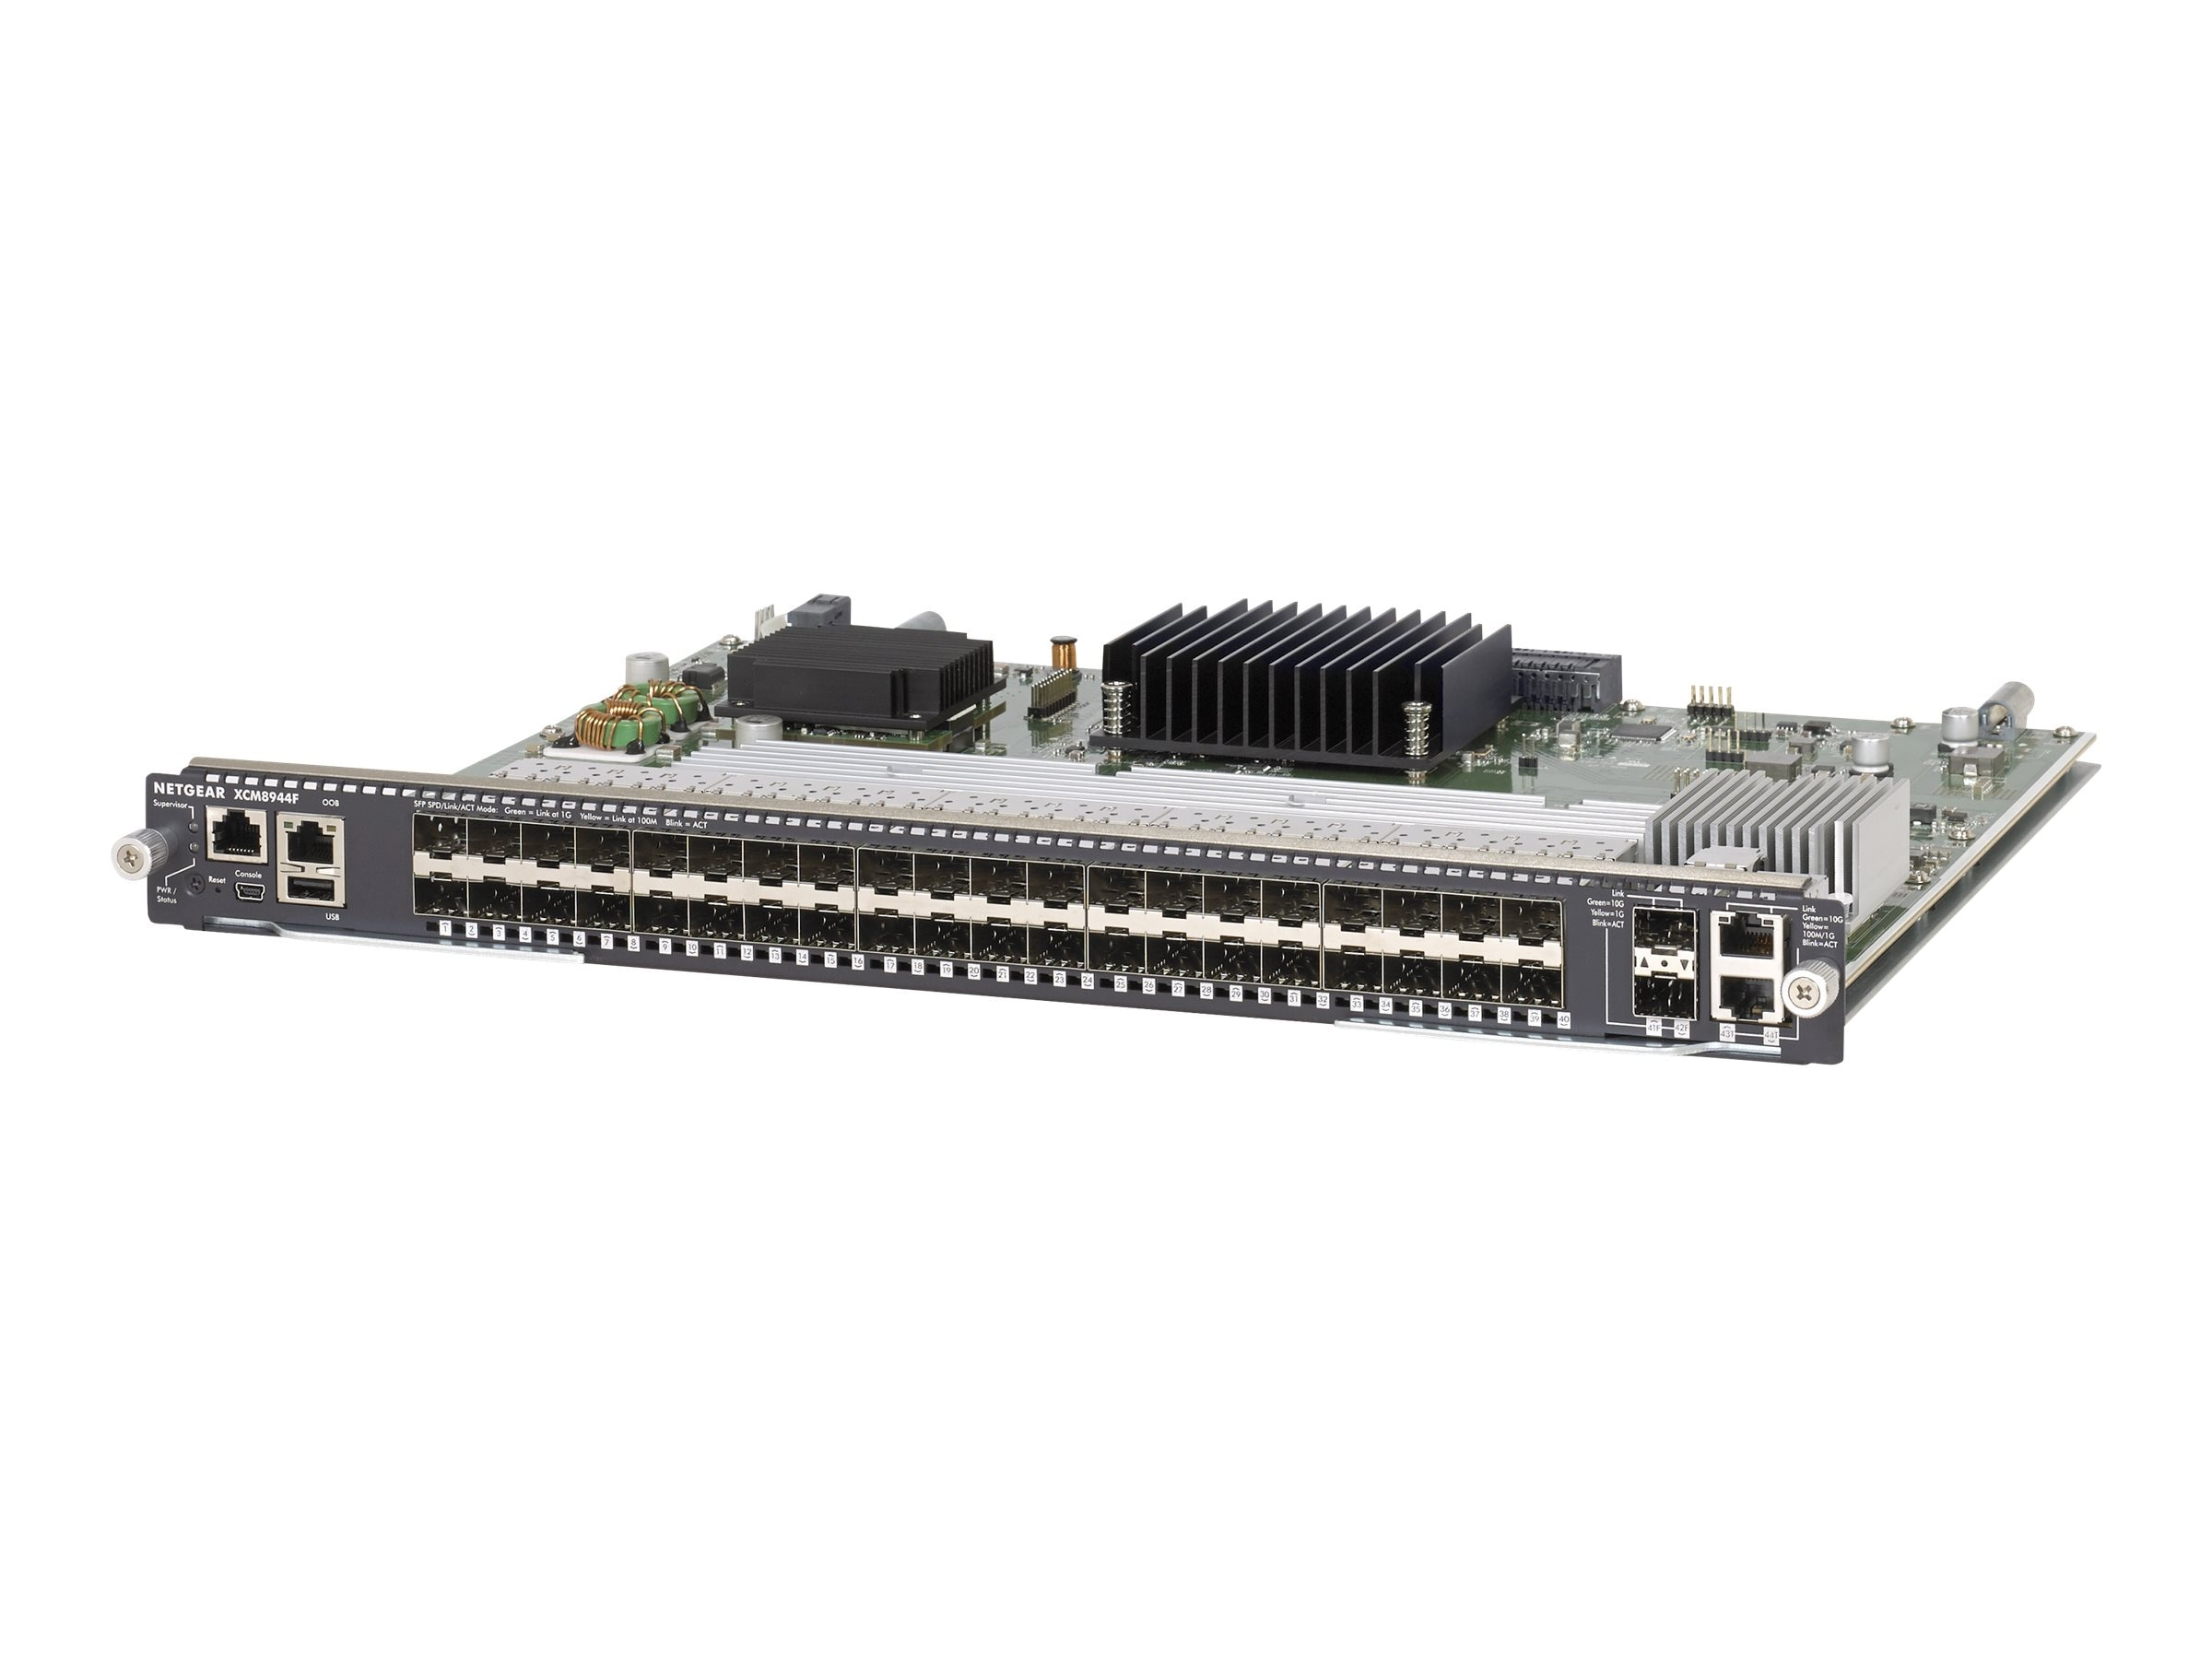 Netgear M6100 Seris 40xSFP 4x10G Blade, XCM8944F-10000S, 18366123, Network Switches